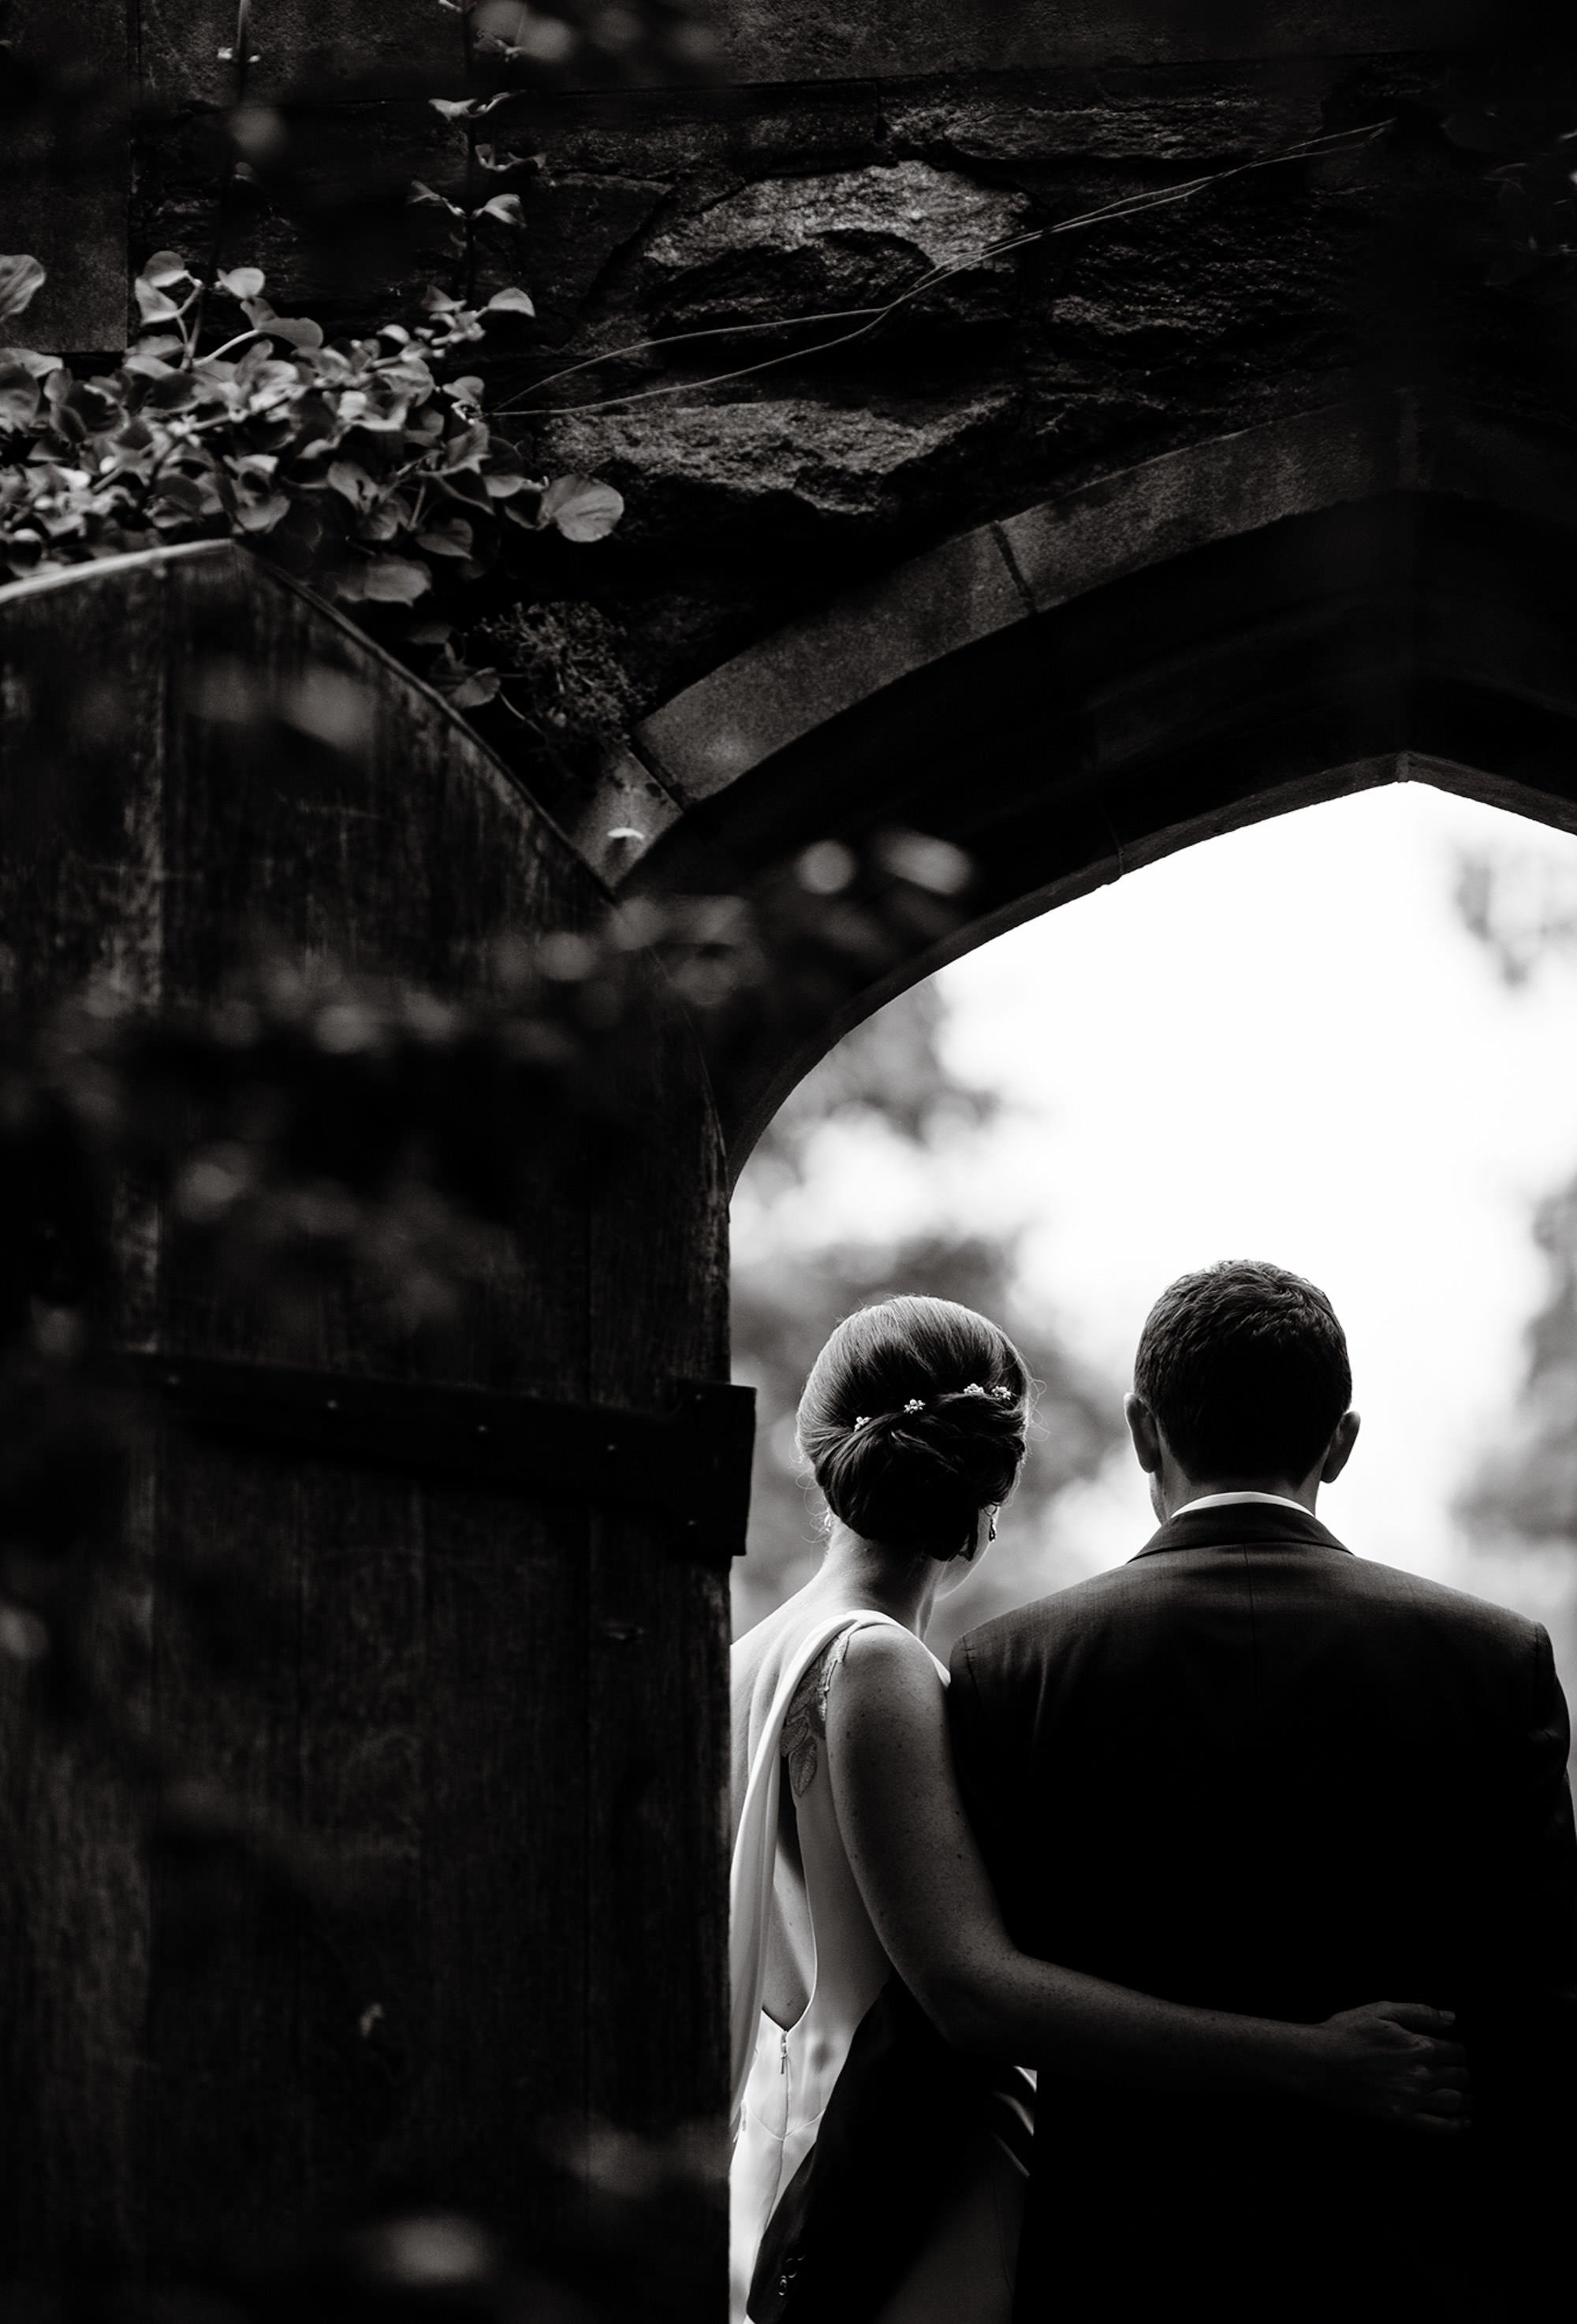 A portrait of the bride and groom.